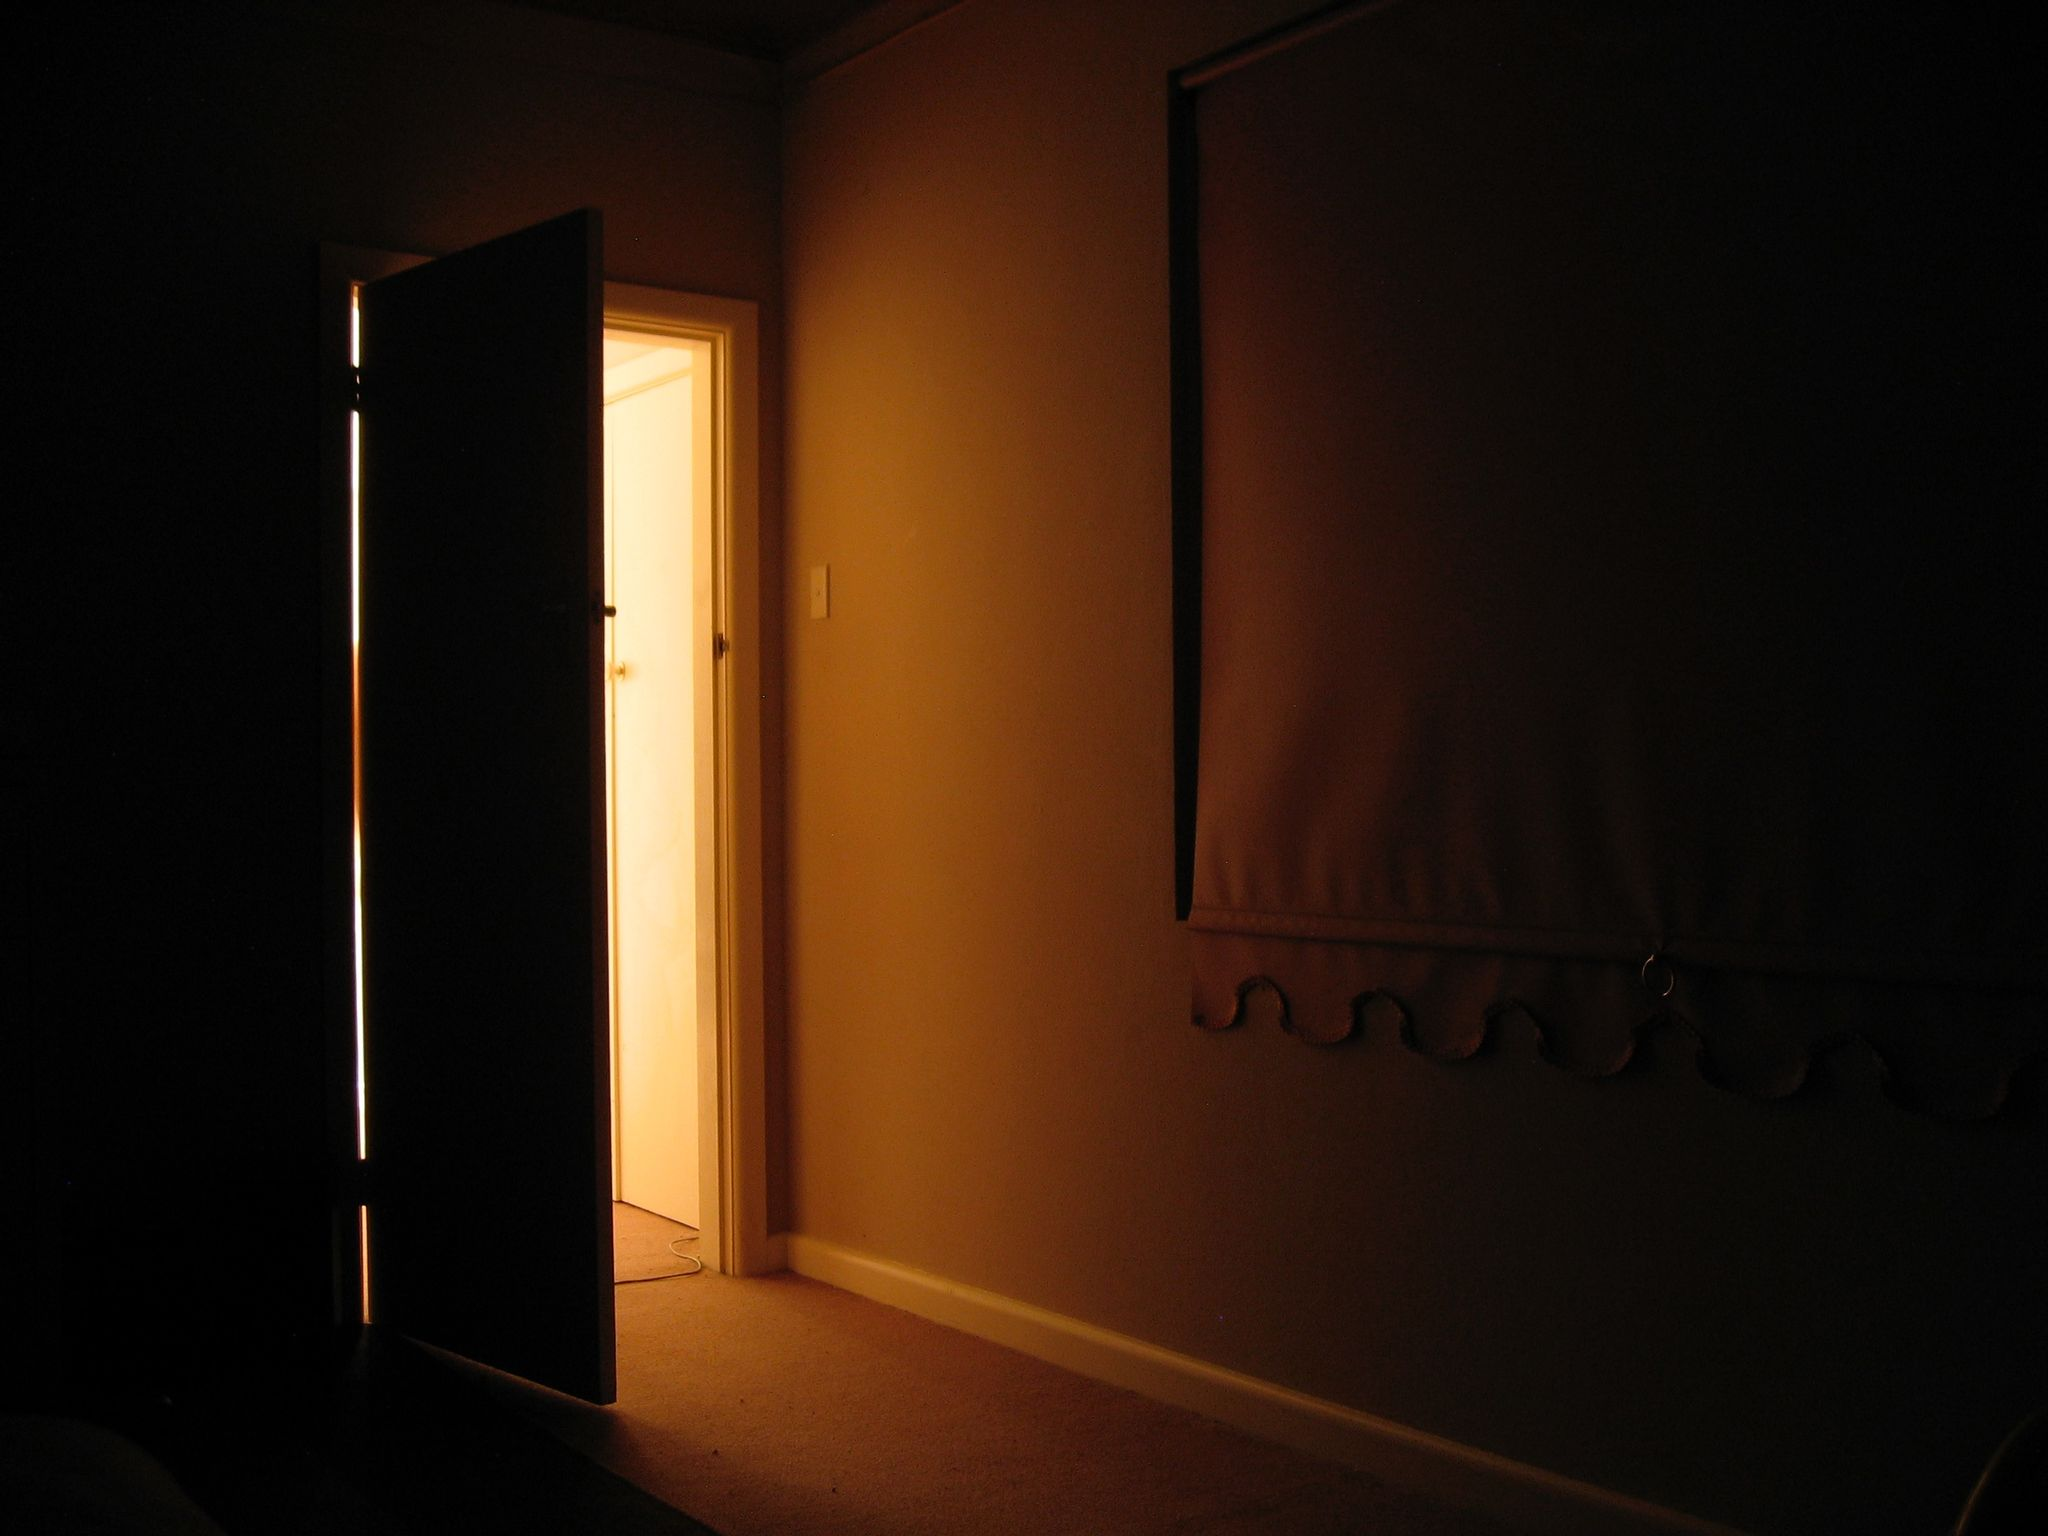 A long exposure photo looking out towards a partially-visible door. The room is dark and there's very warm light coming in from the door.